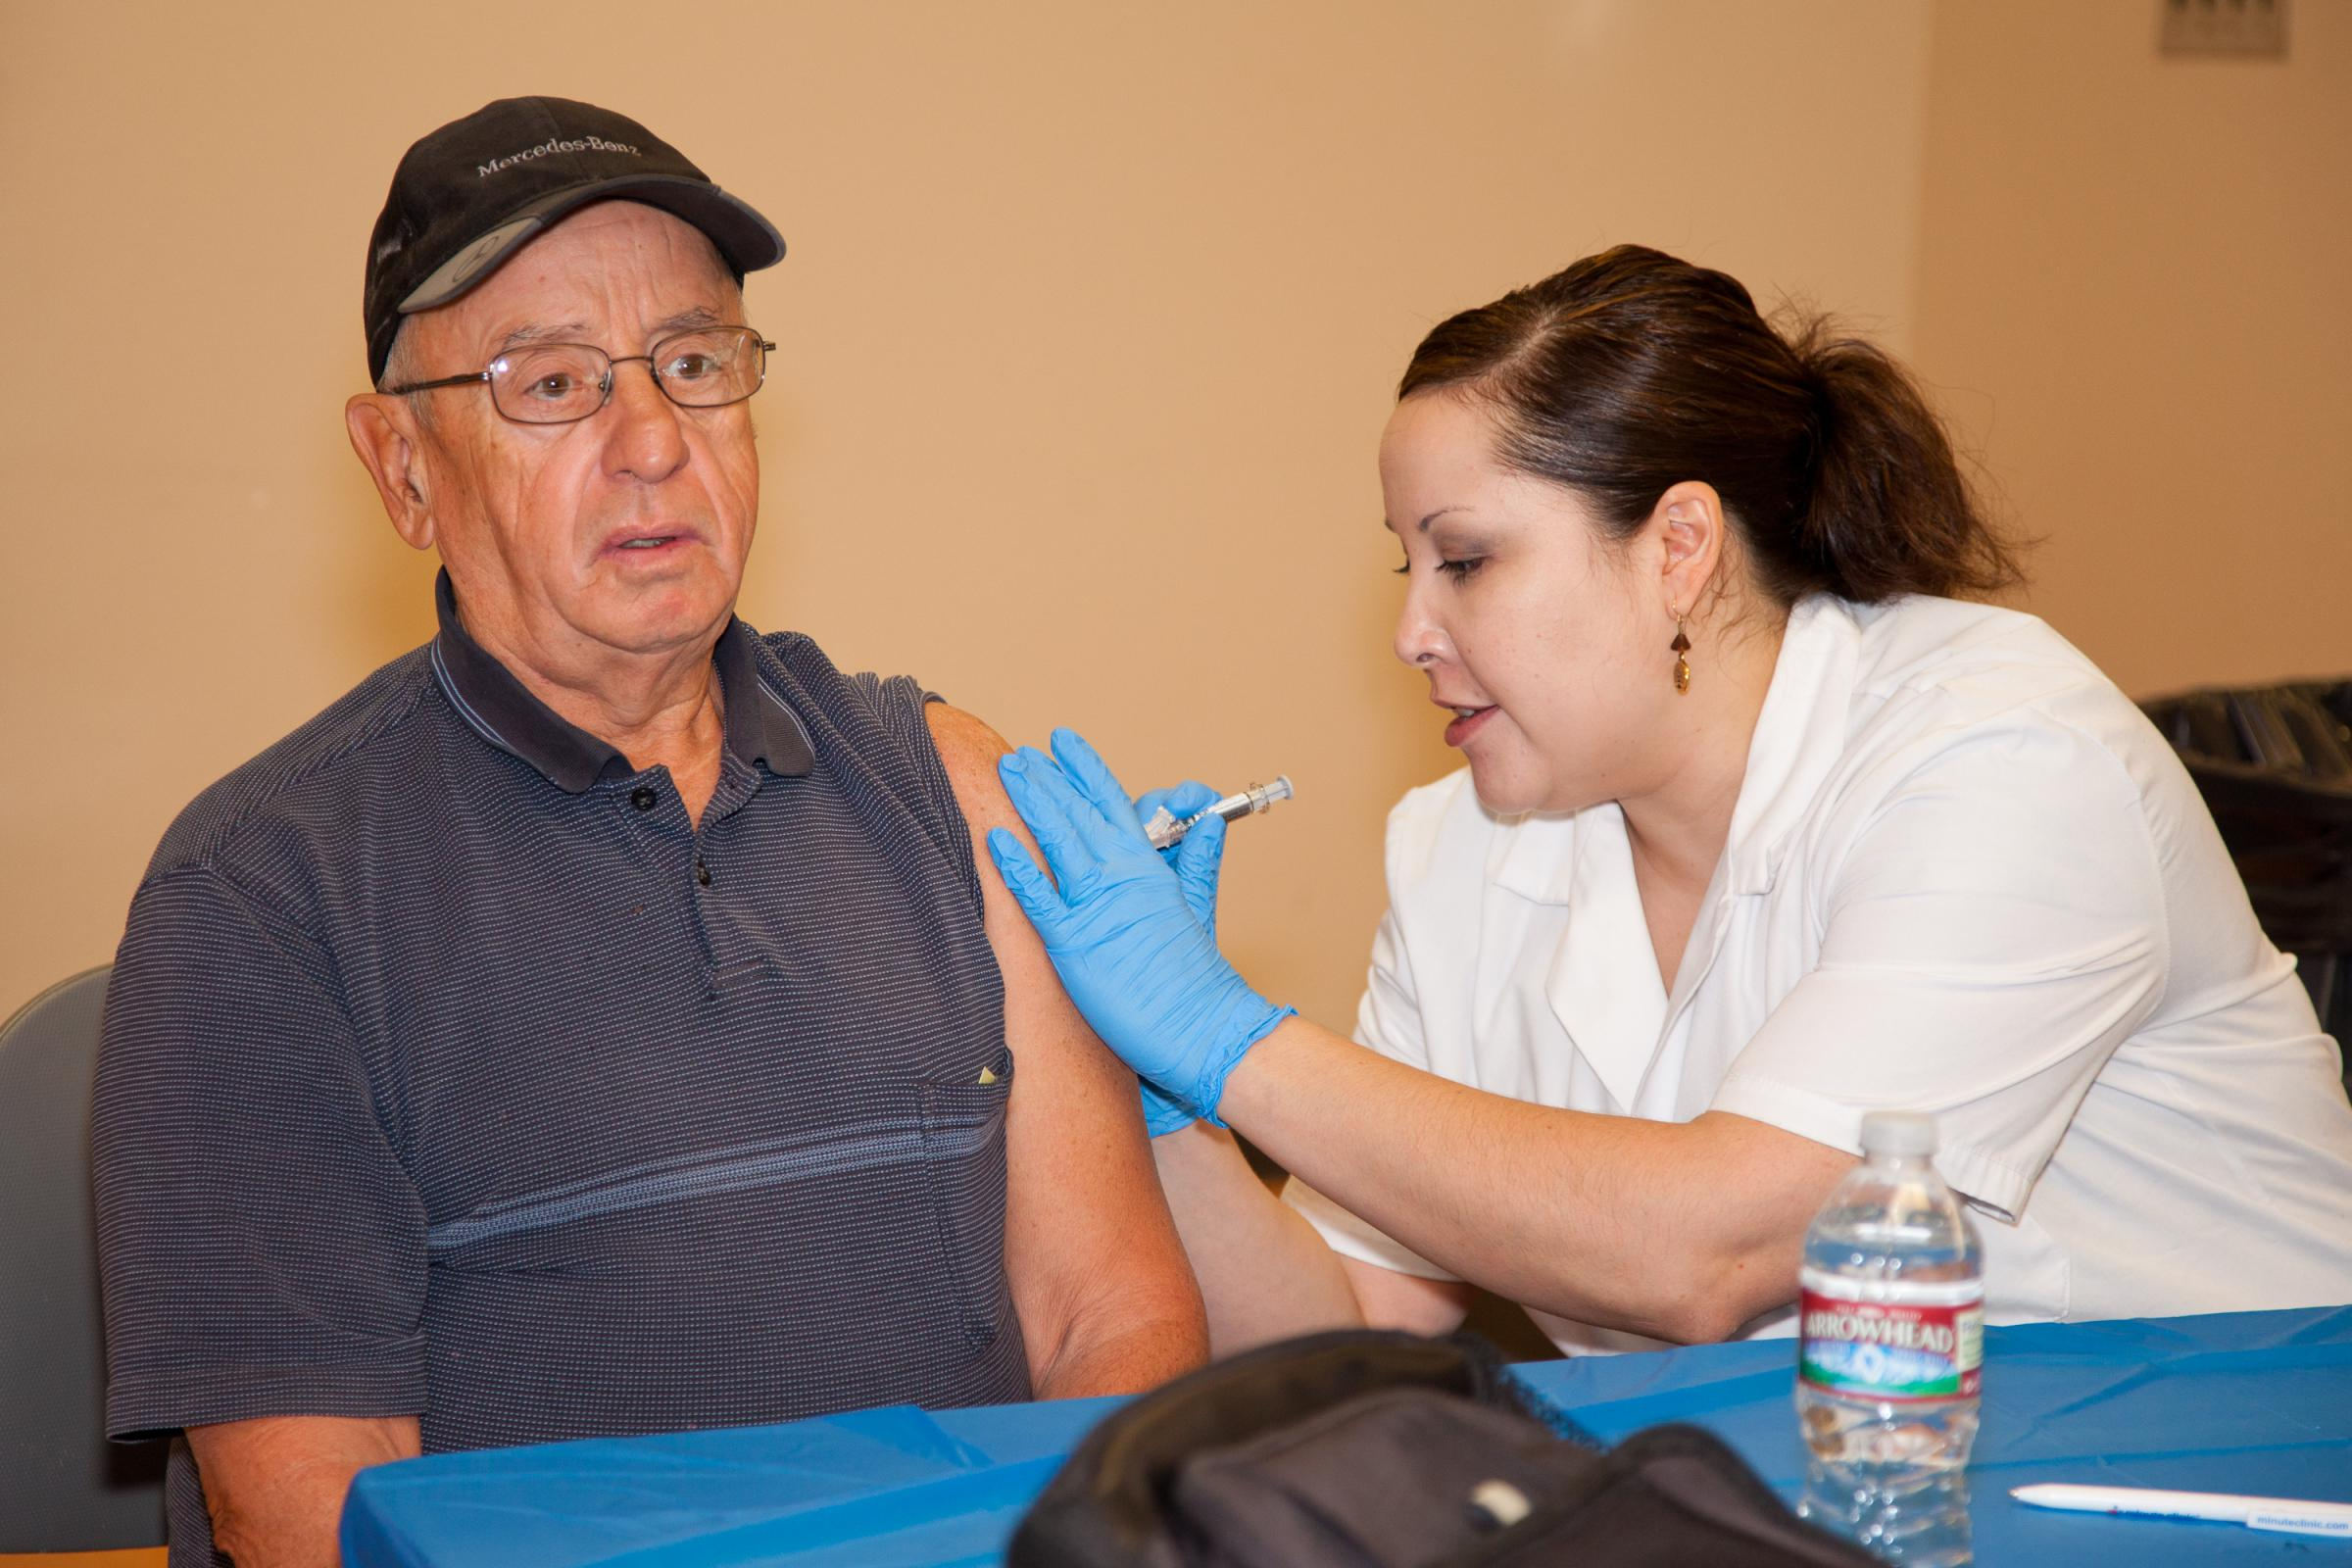 Department of Health Urges Flu Shots as Influenza on the Rise